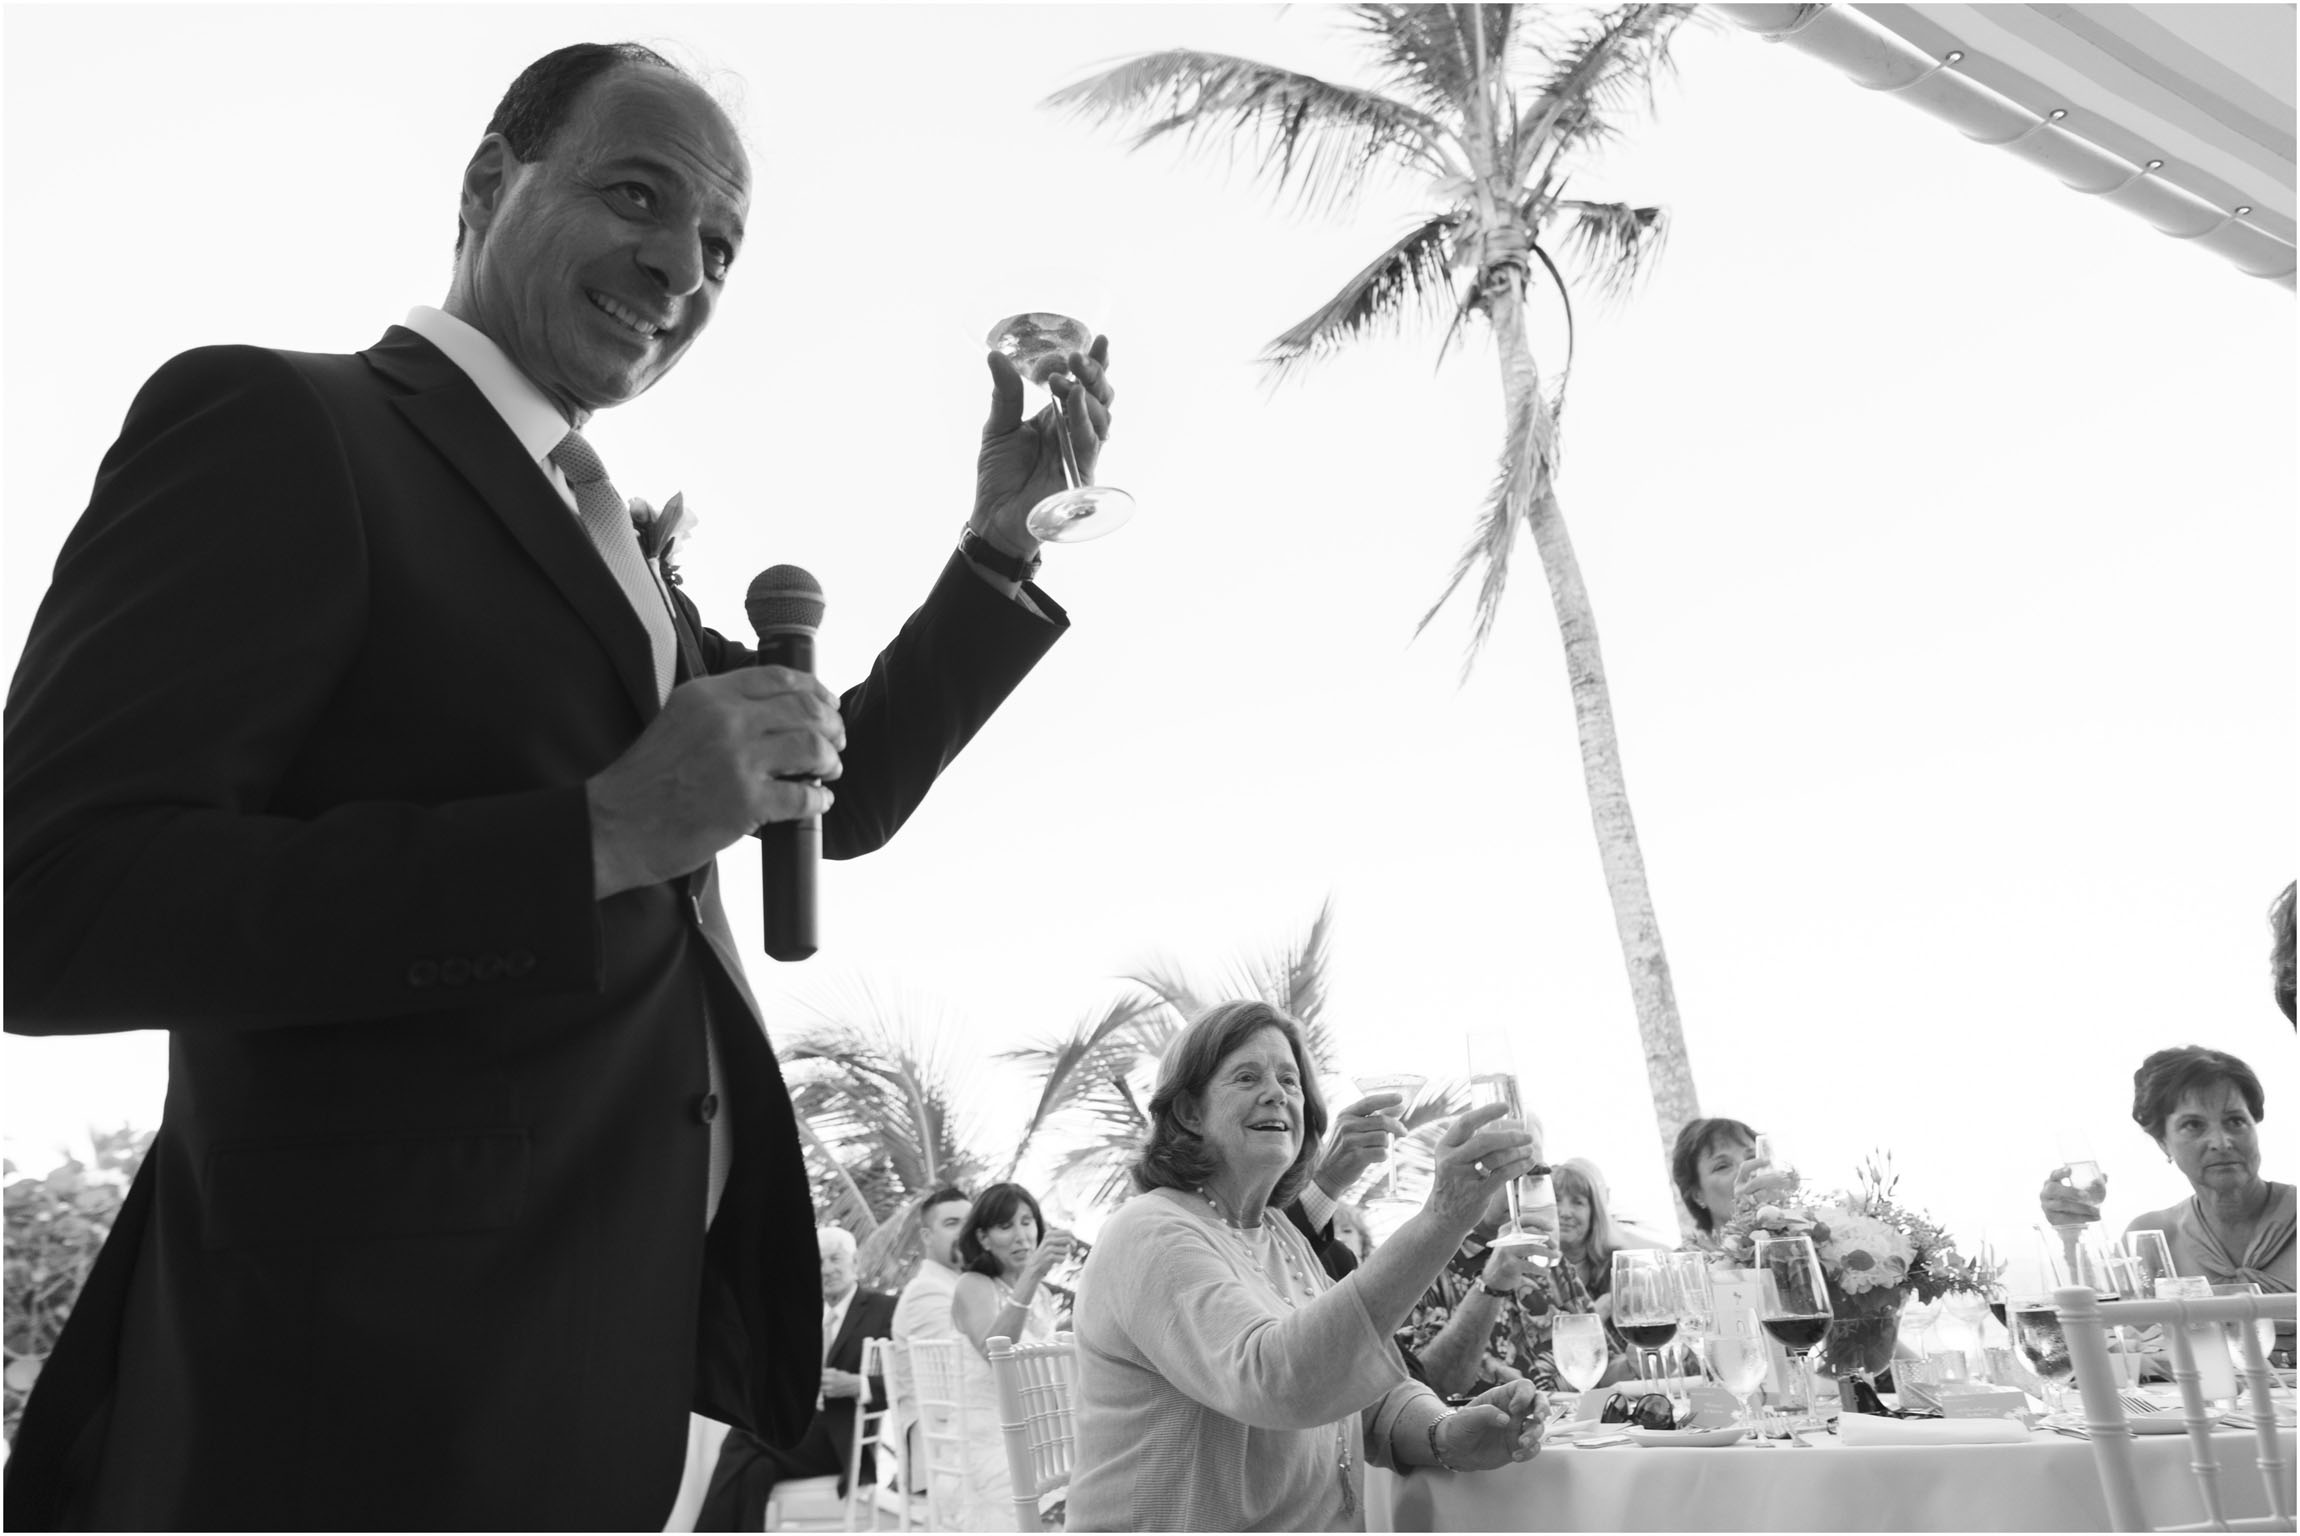 ©FianderFoto_Catherine_Kenny_Coral Beach Wedding_185.jpg